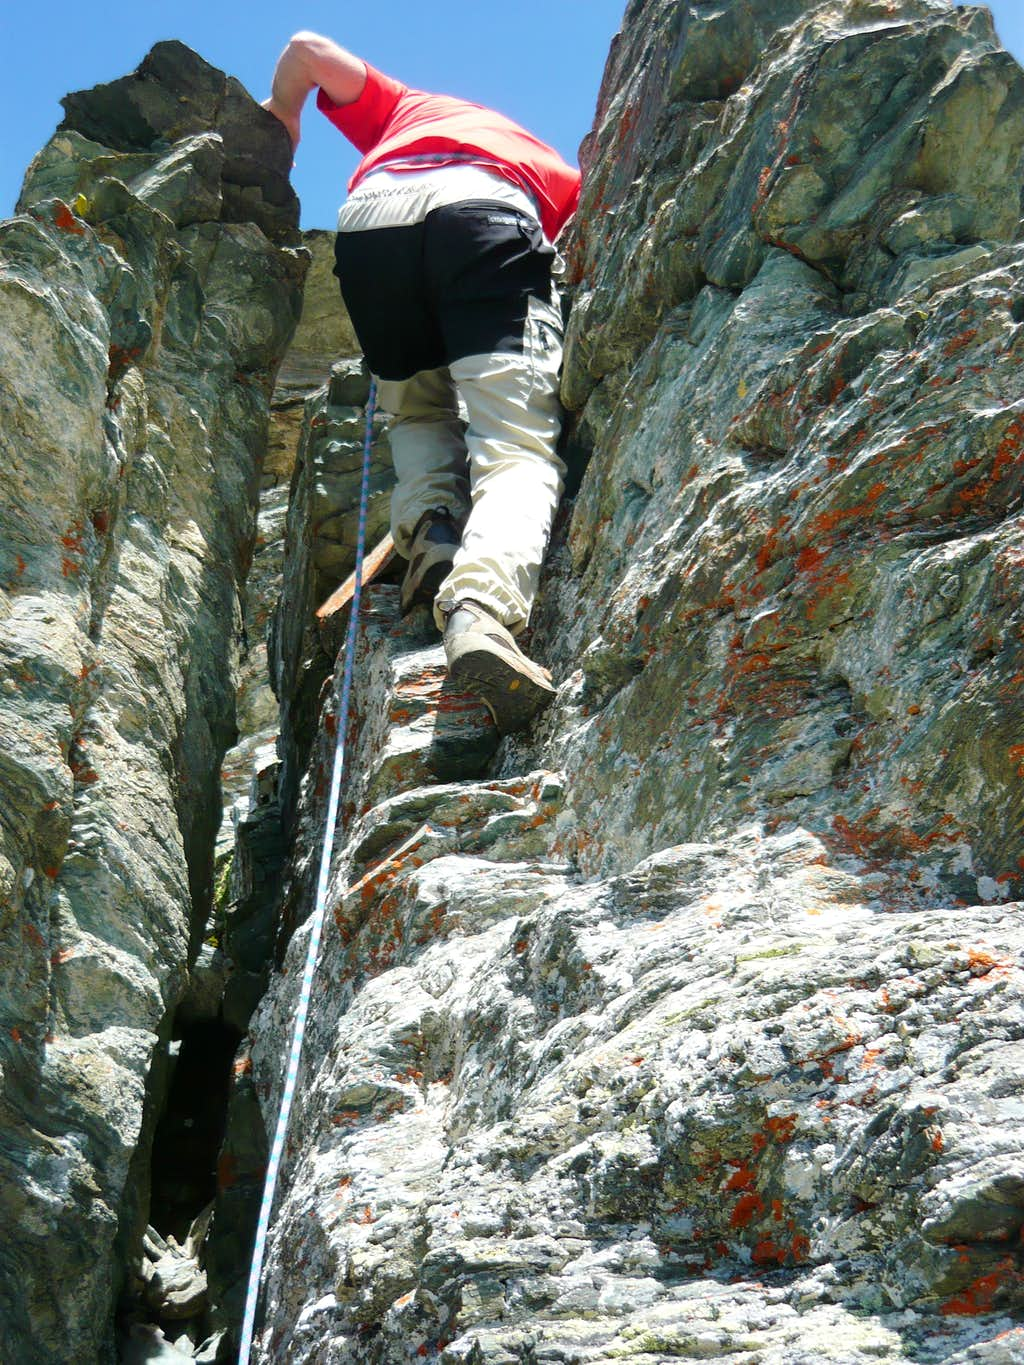 Descending the crack